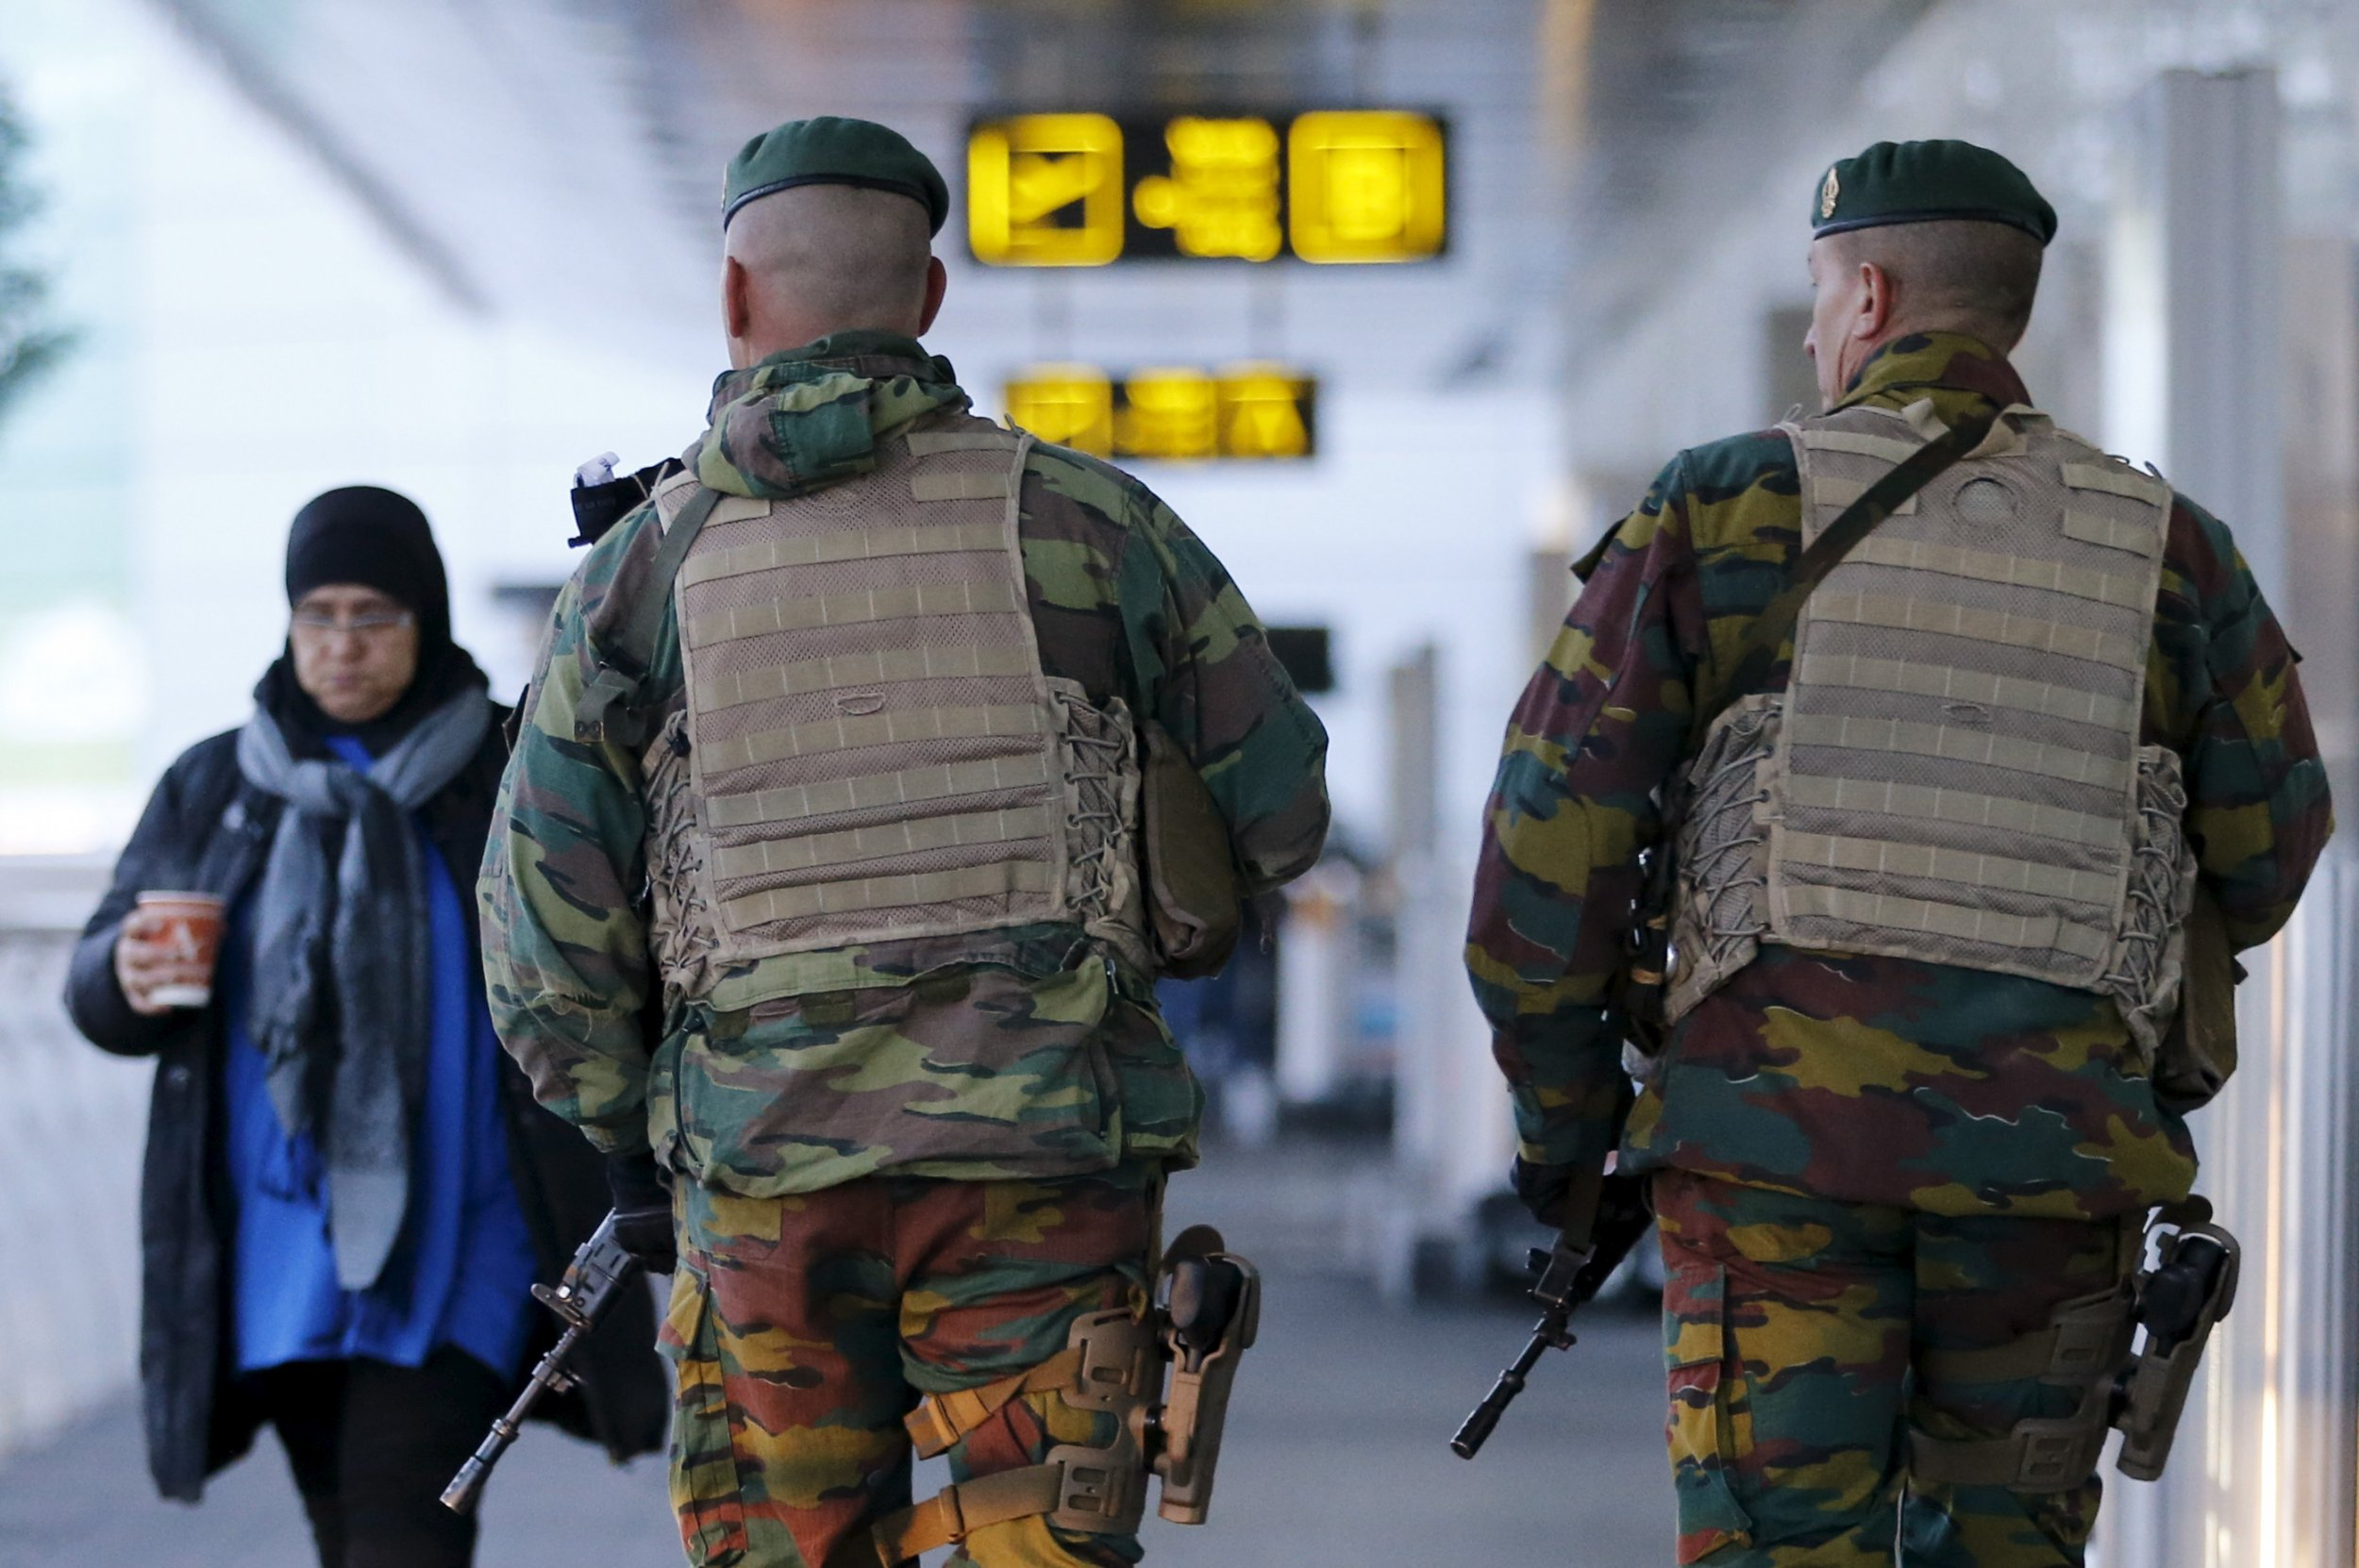 Brussels Explosions Airport Europe